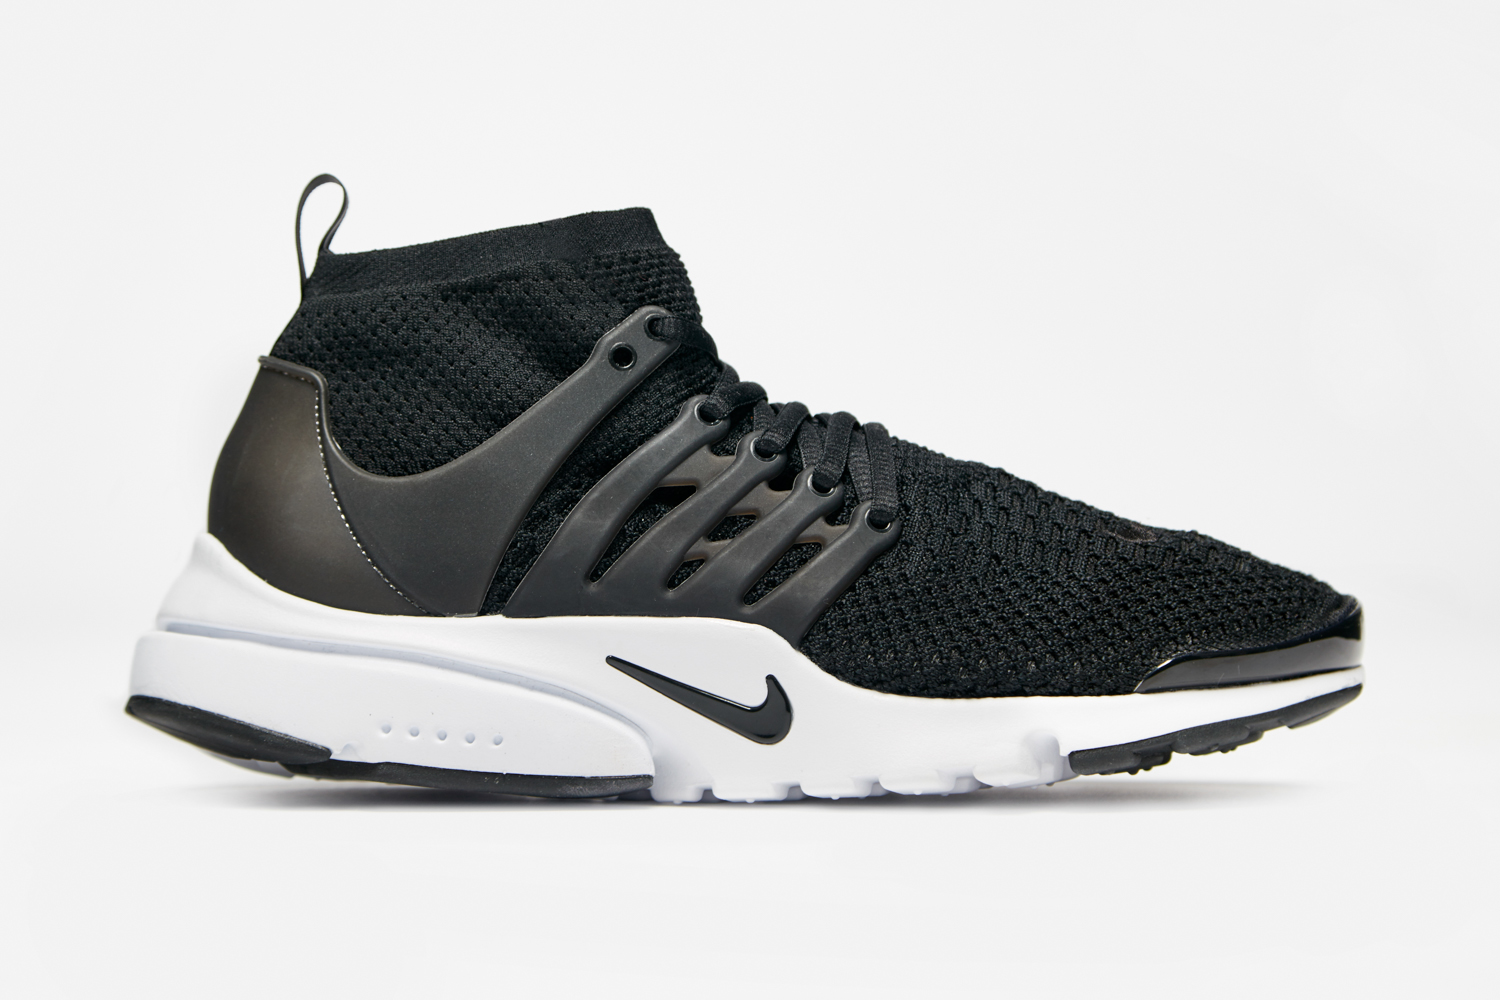 Nike Air Presto Ultra Flyknit Black